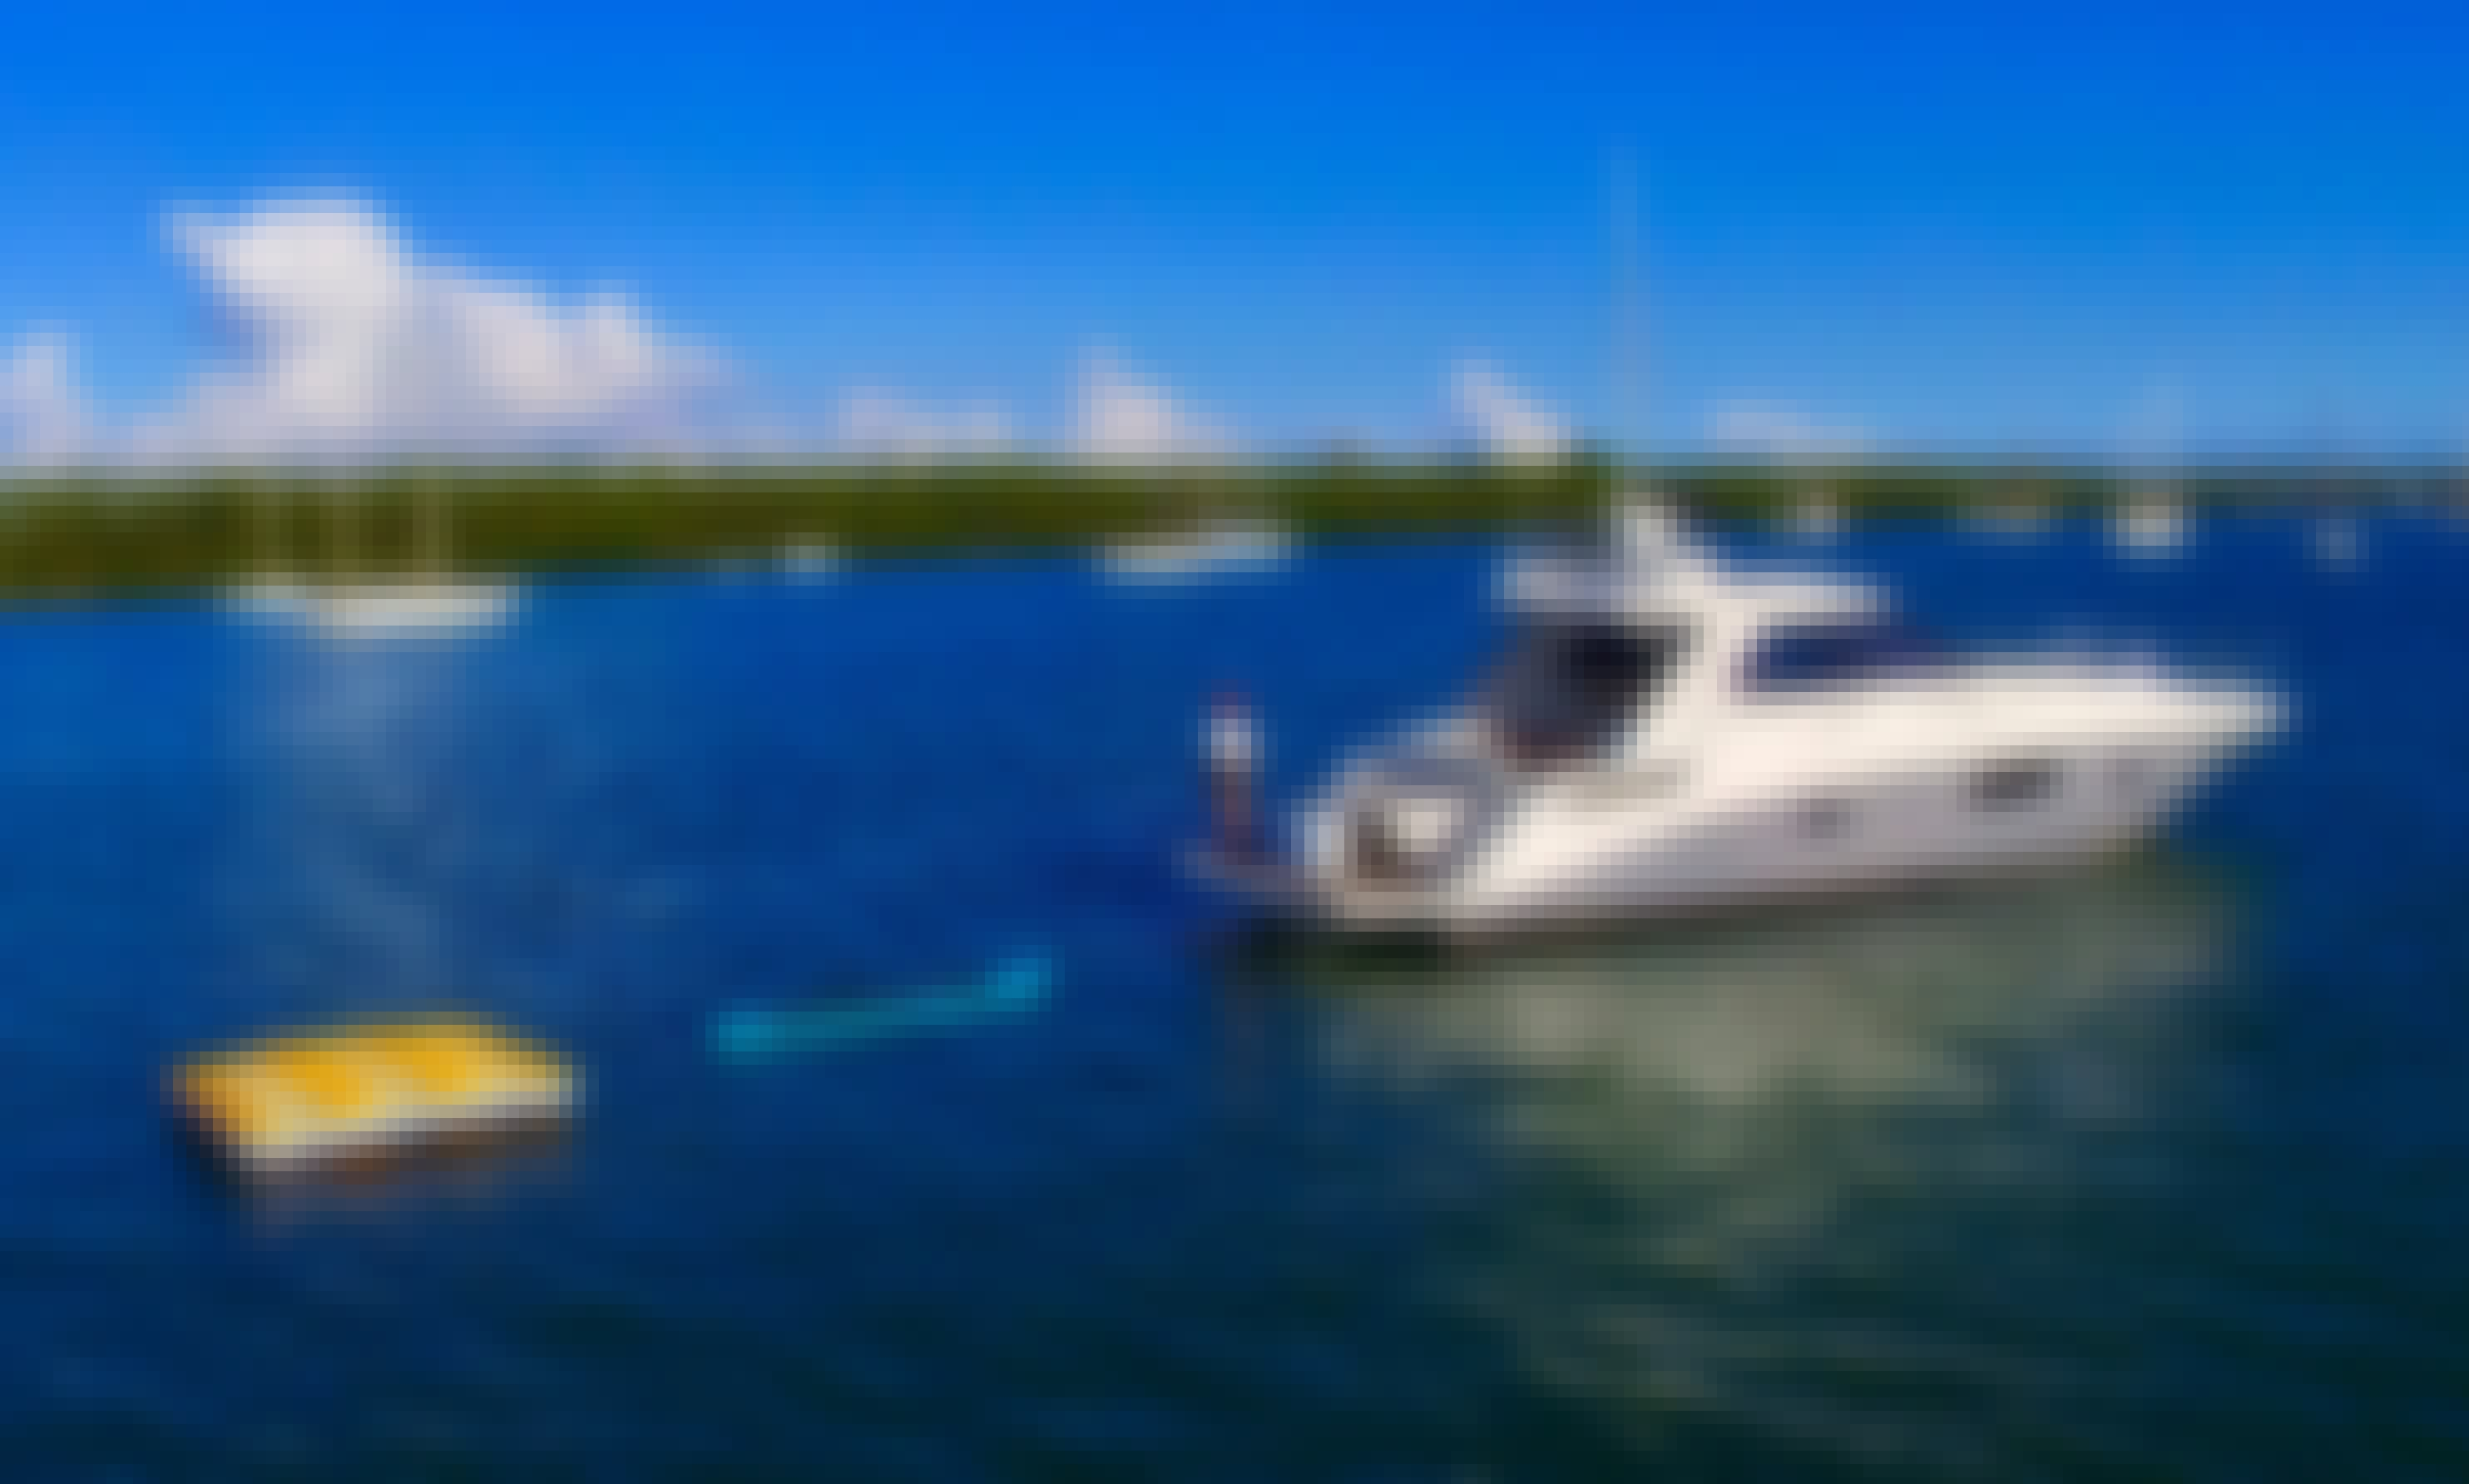 Don't Just Rent a Yacht. Rent a Luxury Yachting Experience! (47' SeaRay) INCLUDES TAX